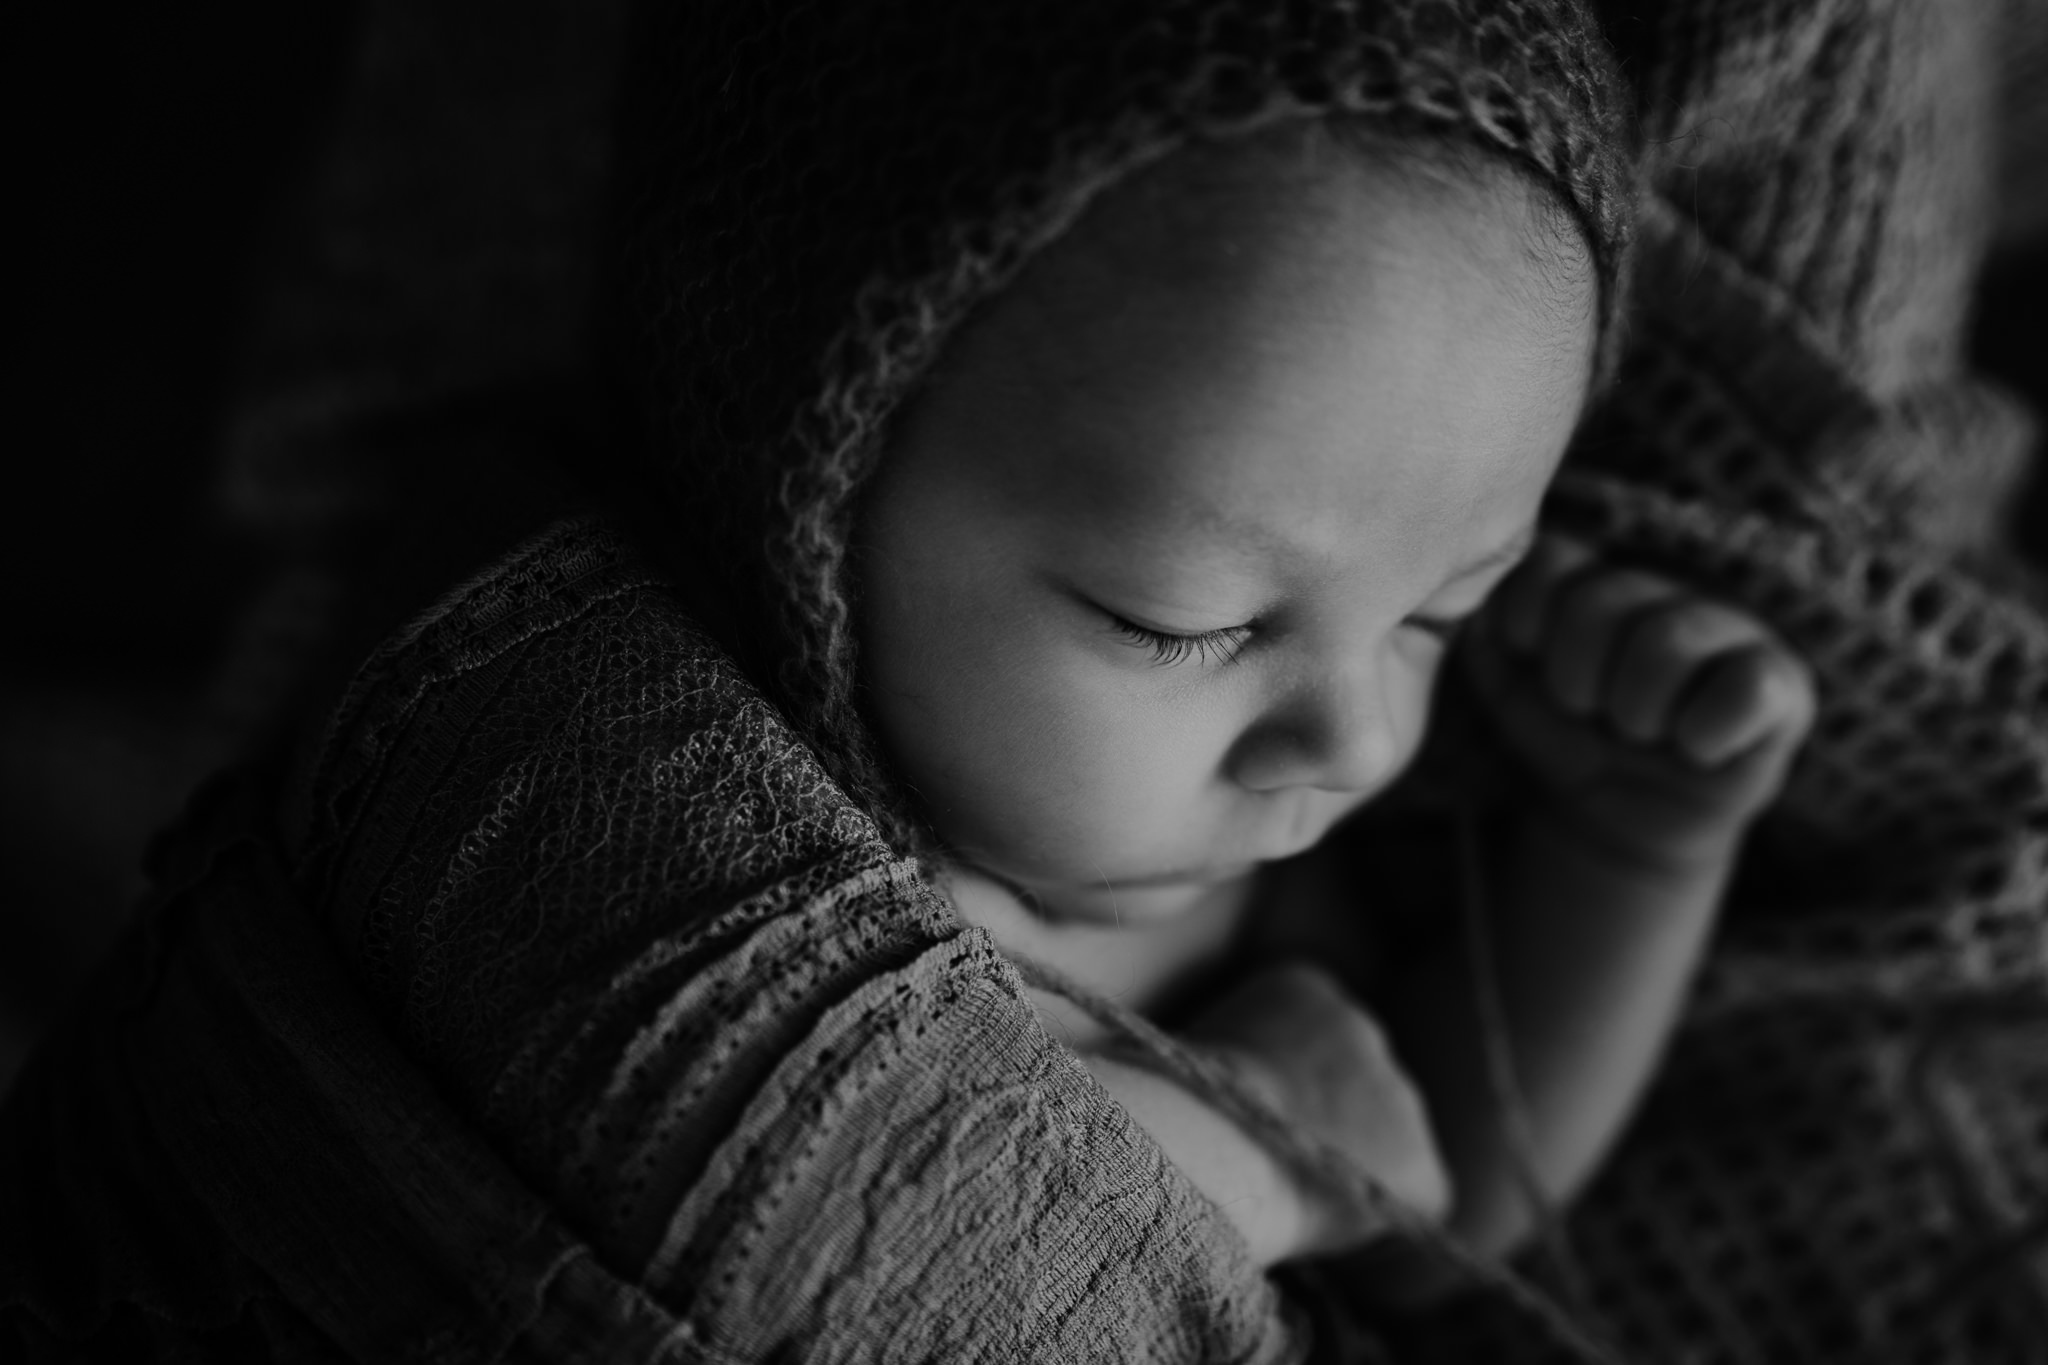 newborn-girl-bonnet-photography-ni